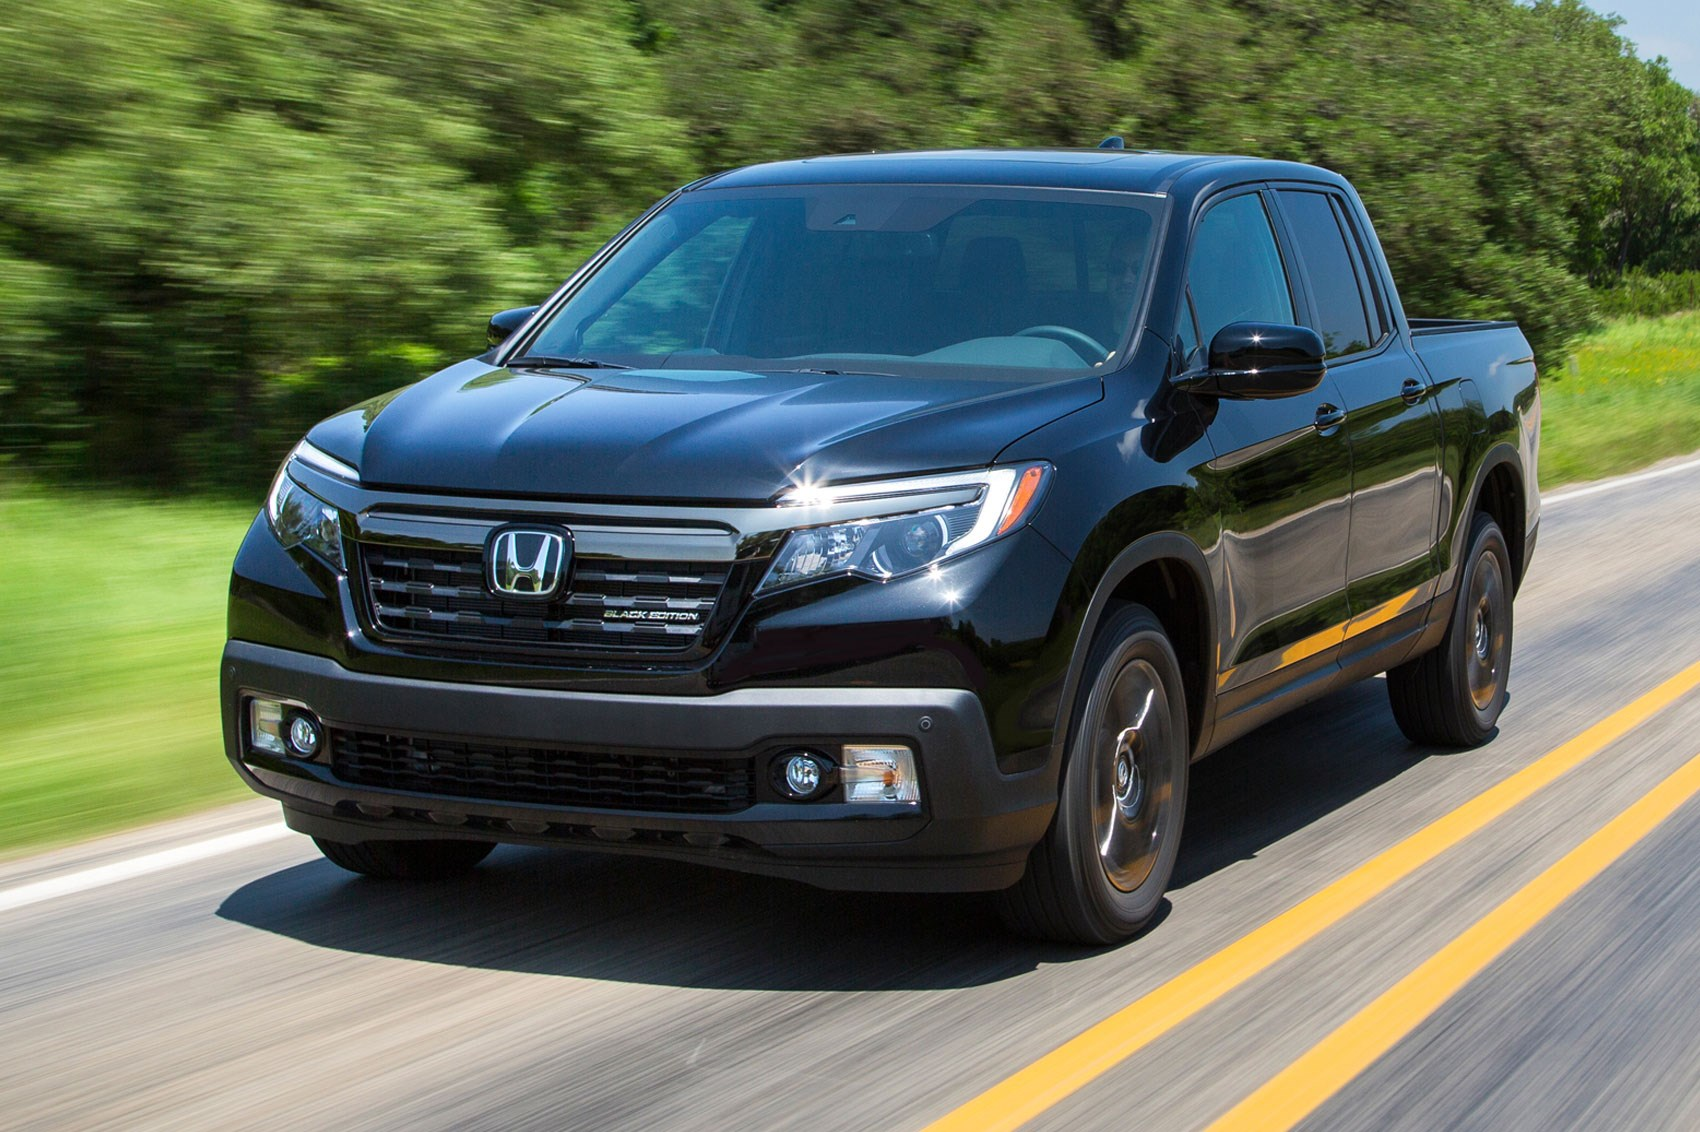 tent honda price mpg specs bed photos truck ridgeline